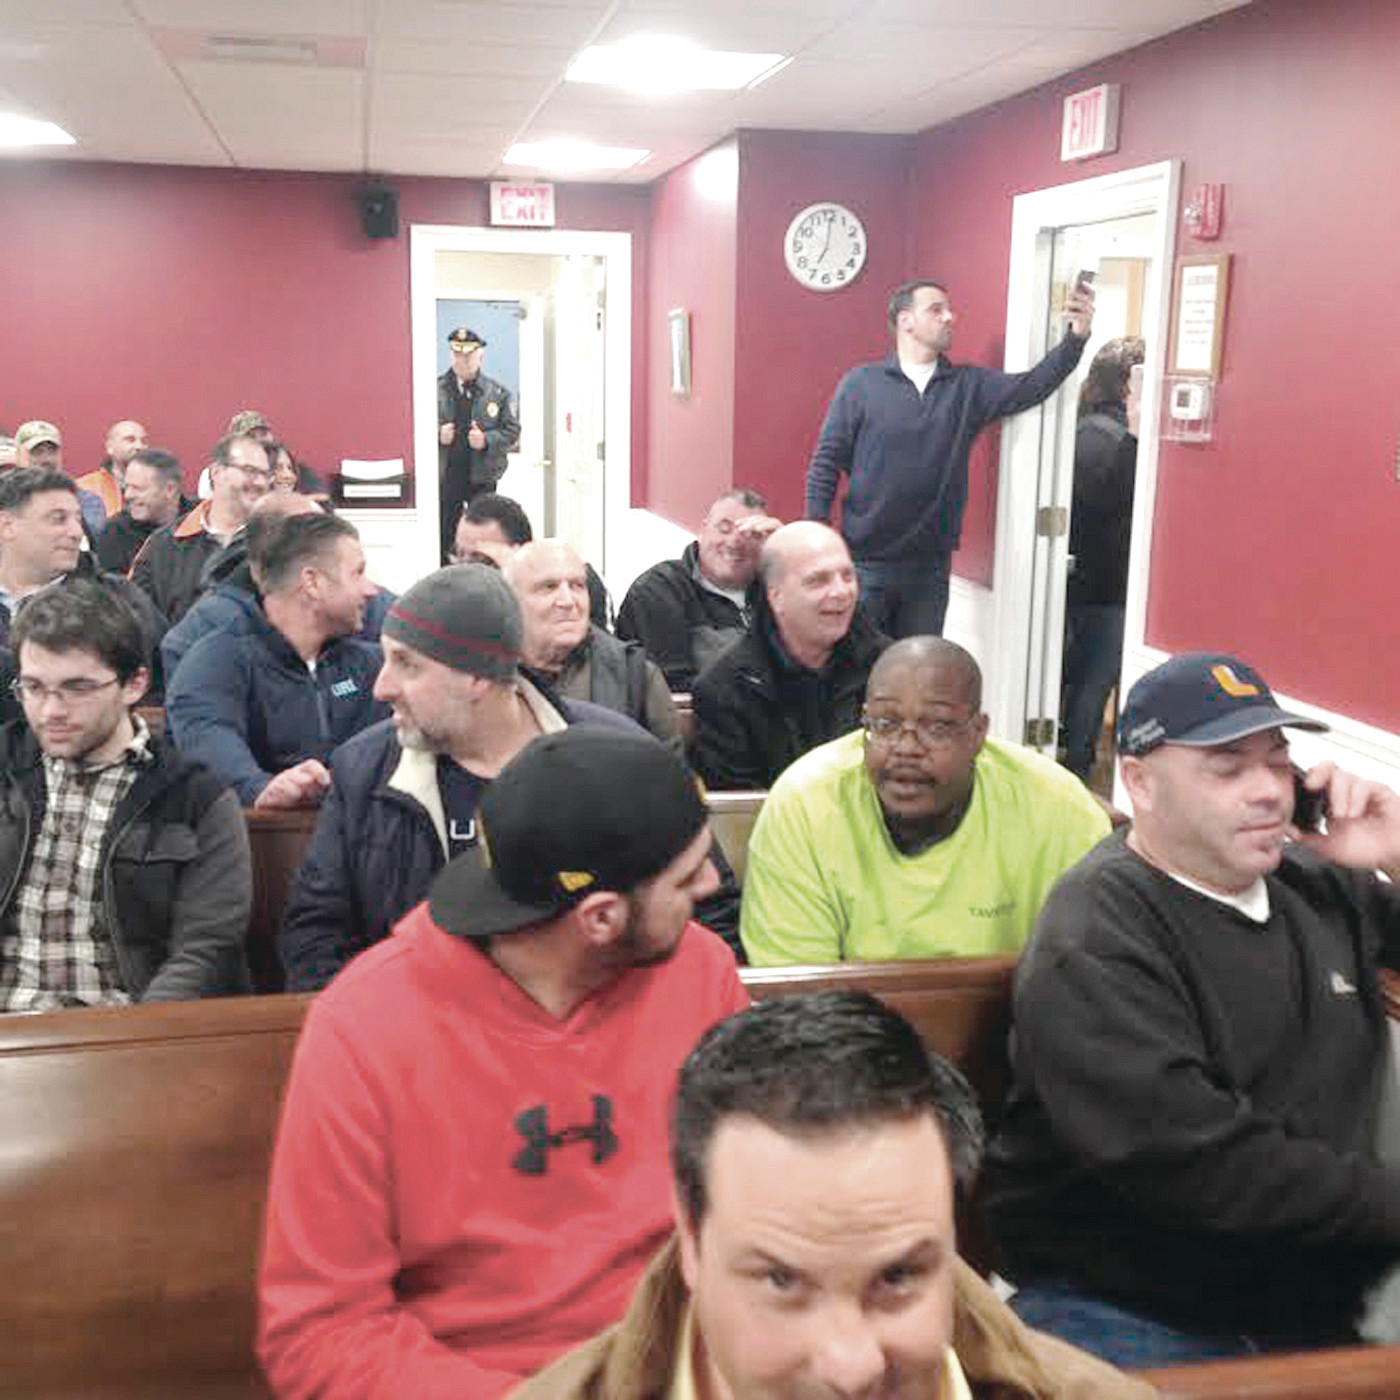 FULL HOUSE: This was the scene during the Jan. 10 special meeting where the Town Council approved a plan to sell water to supply Invenergy's proposed power plant in Burrillville.